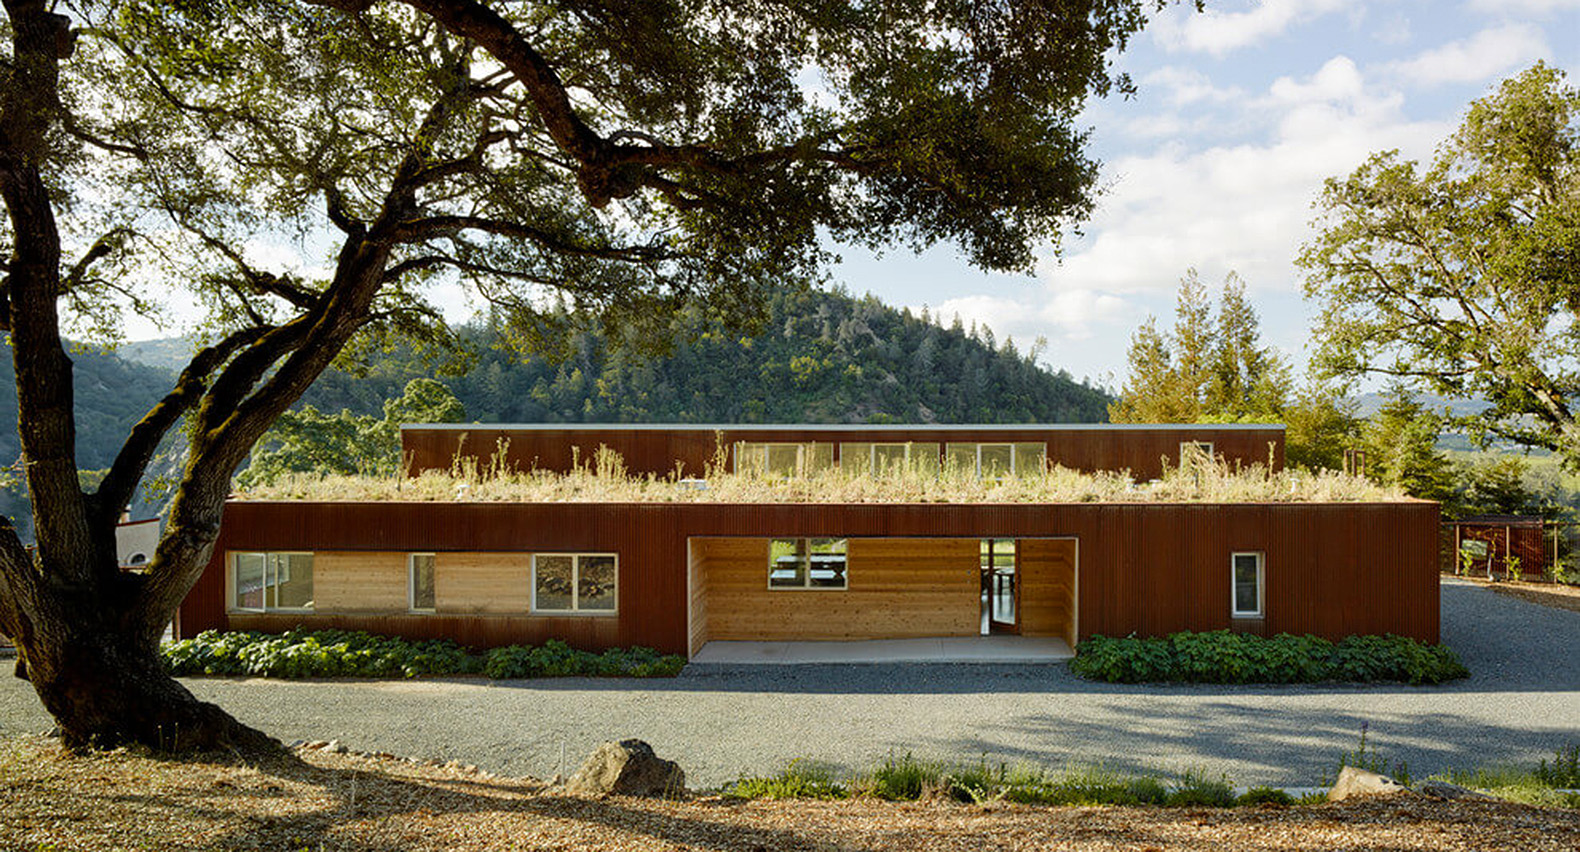 Solar powered Cloverdale house is made of reclaimed